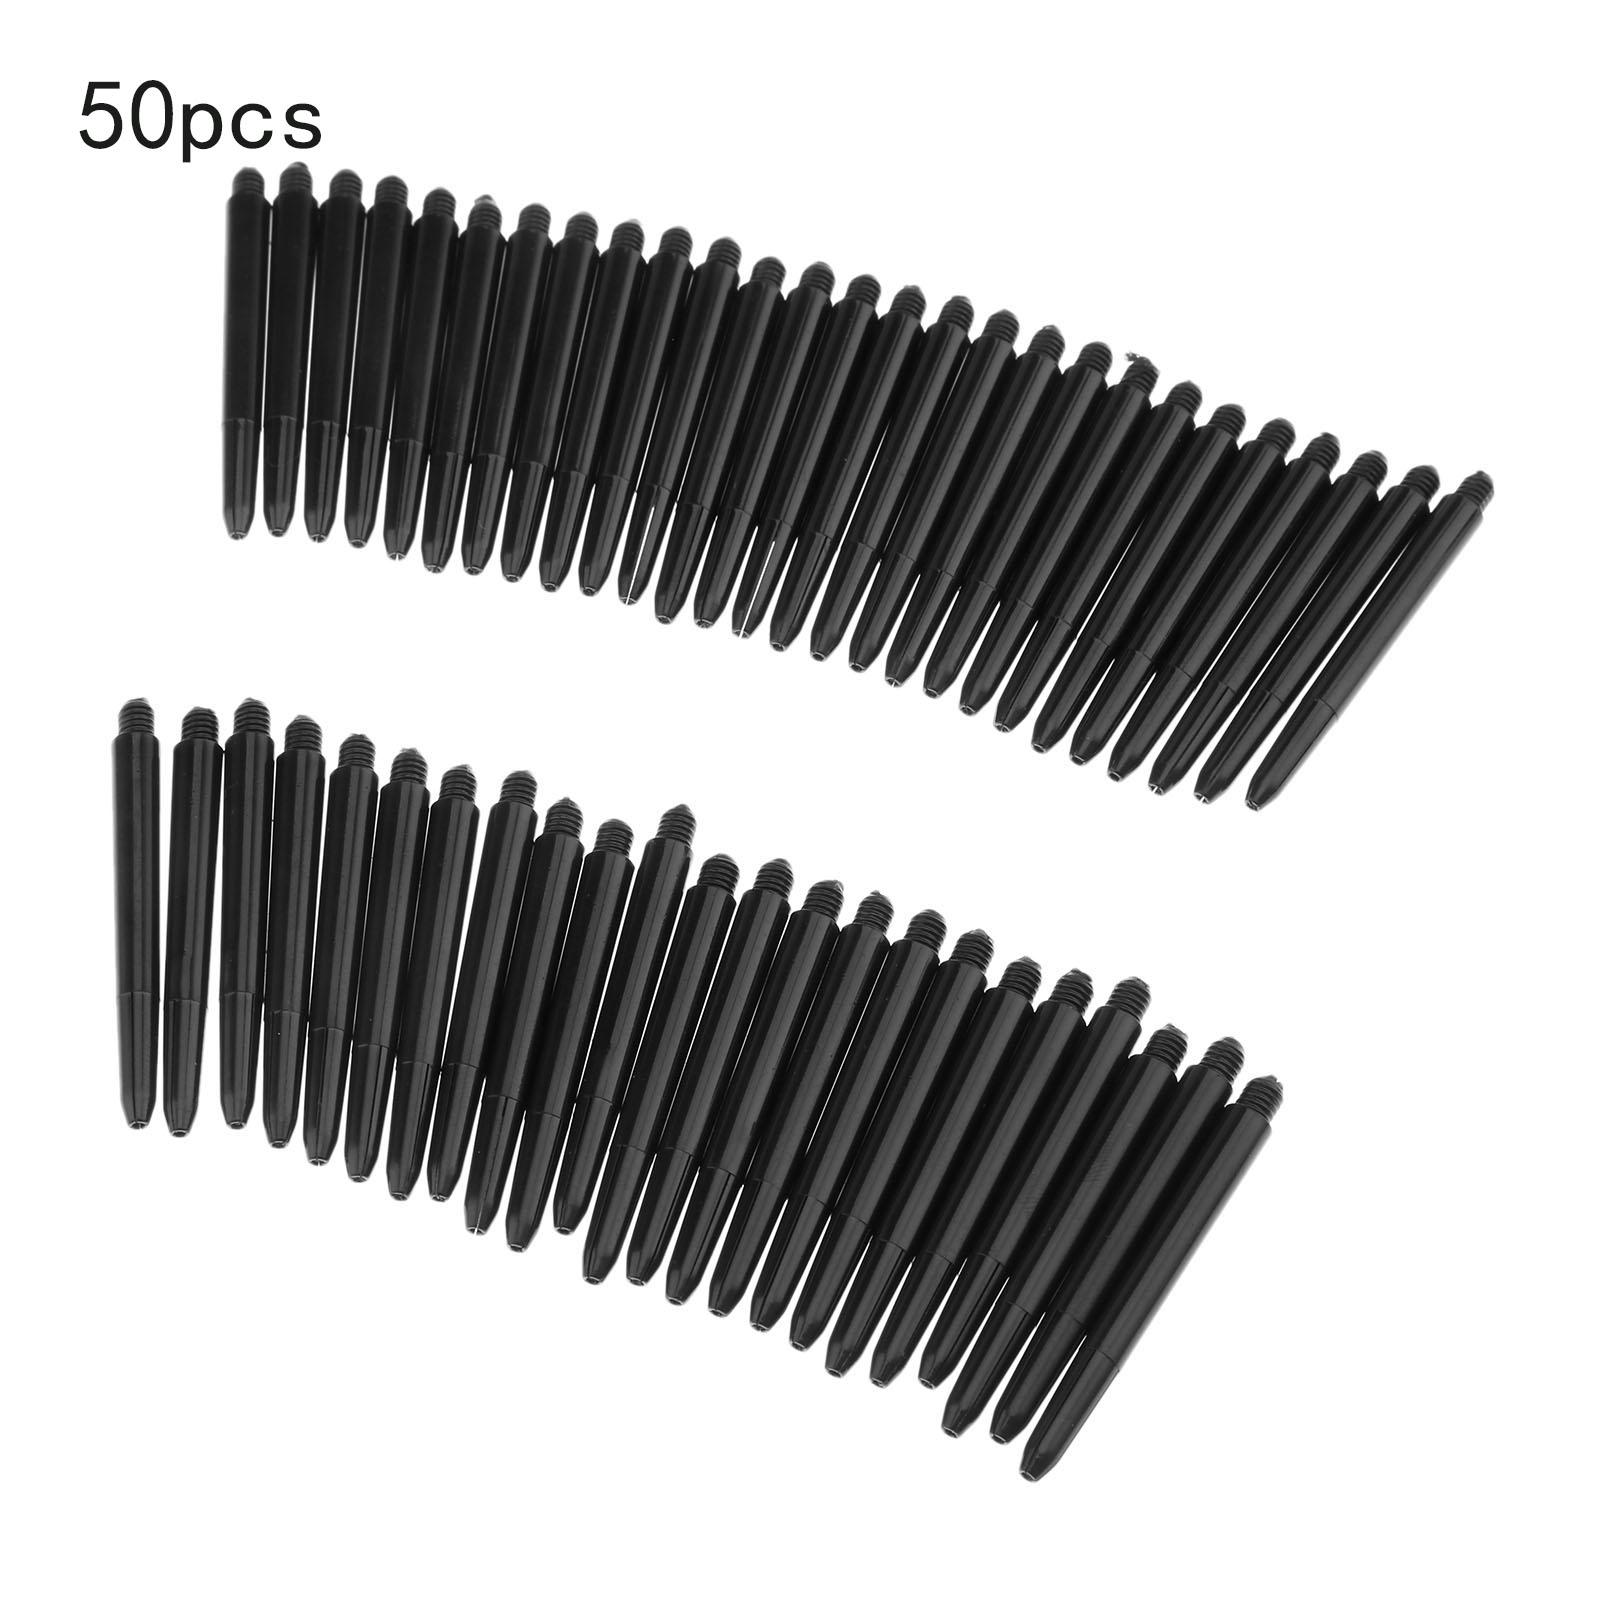 Black 50pcs/lot Nylon Dart Shafts 2BA 48mm Screw Thread Plastic Darts Rod Stems Darts Accessories for Standard 2BA screw thread 013 spider pattern sharp tungsten plated iron plastic darts for dart games black 3 pcs